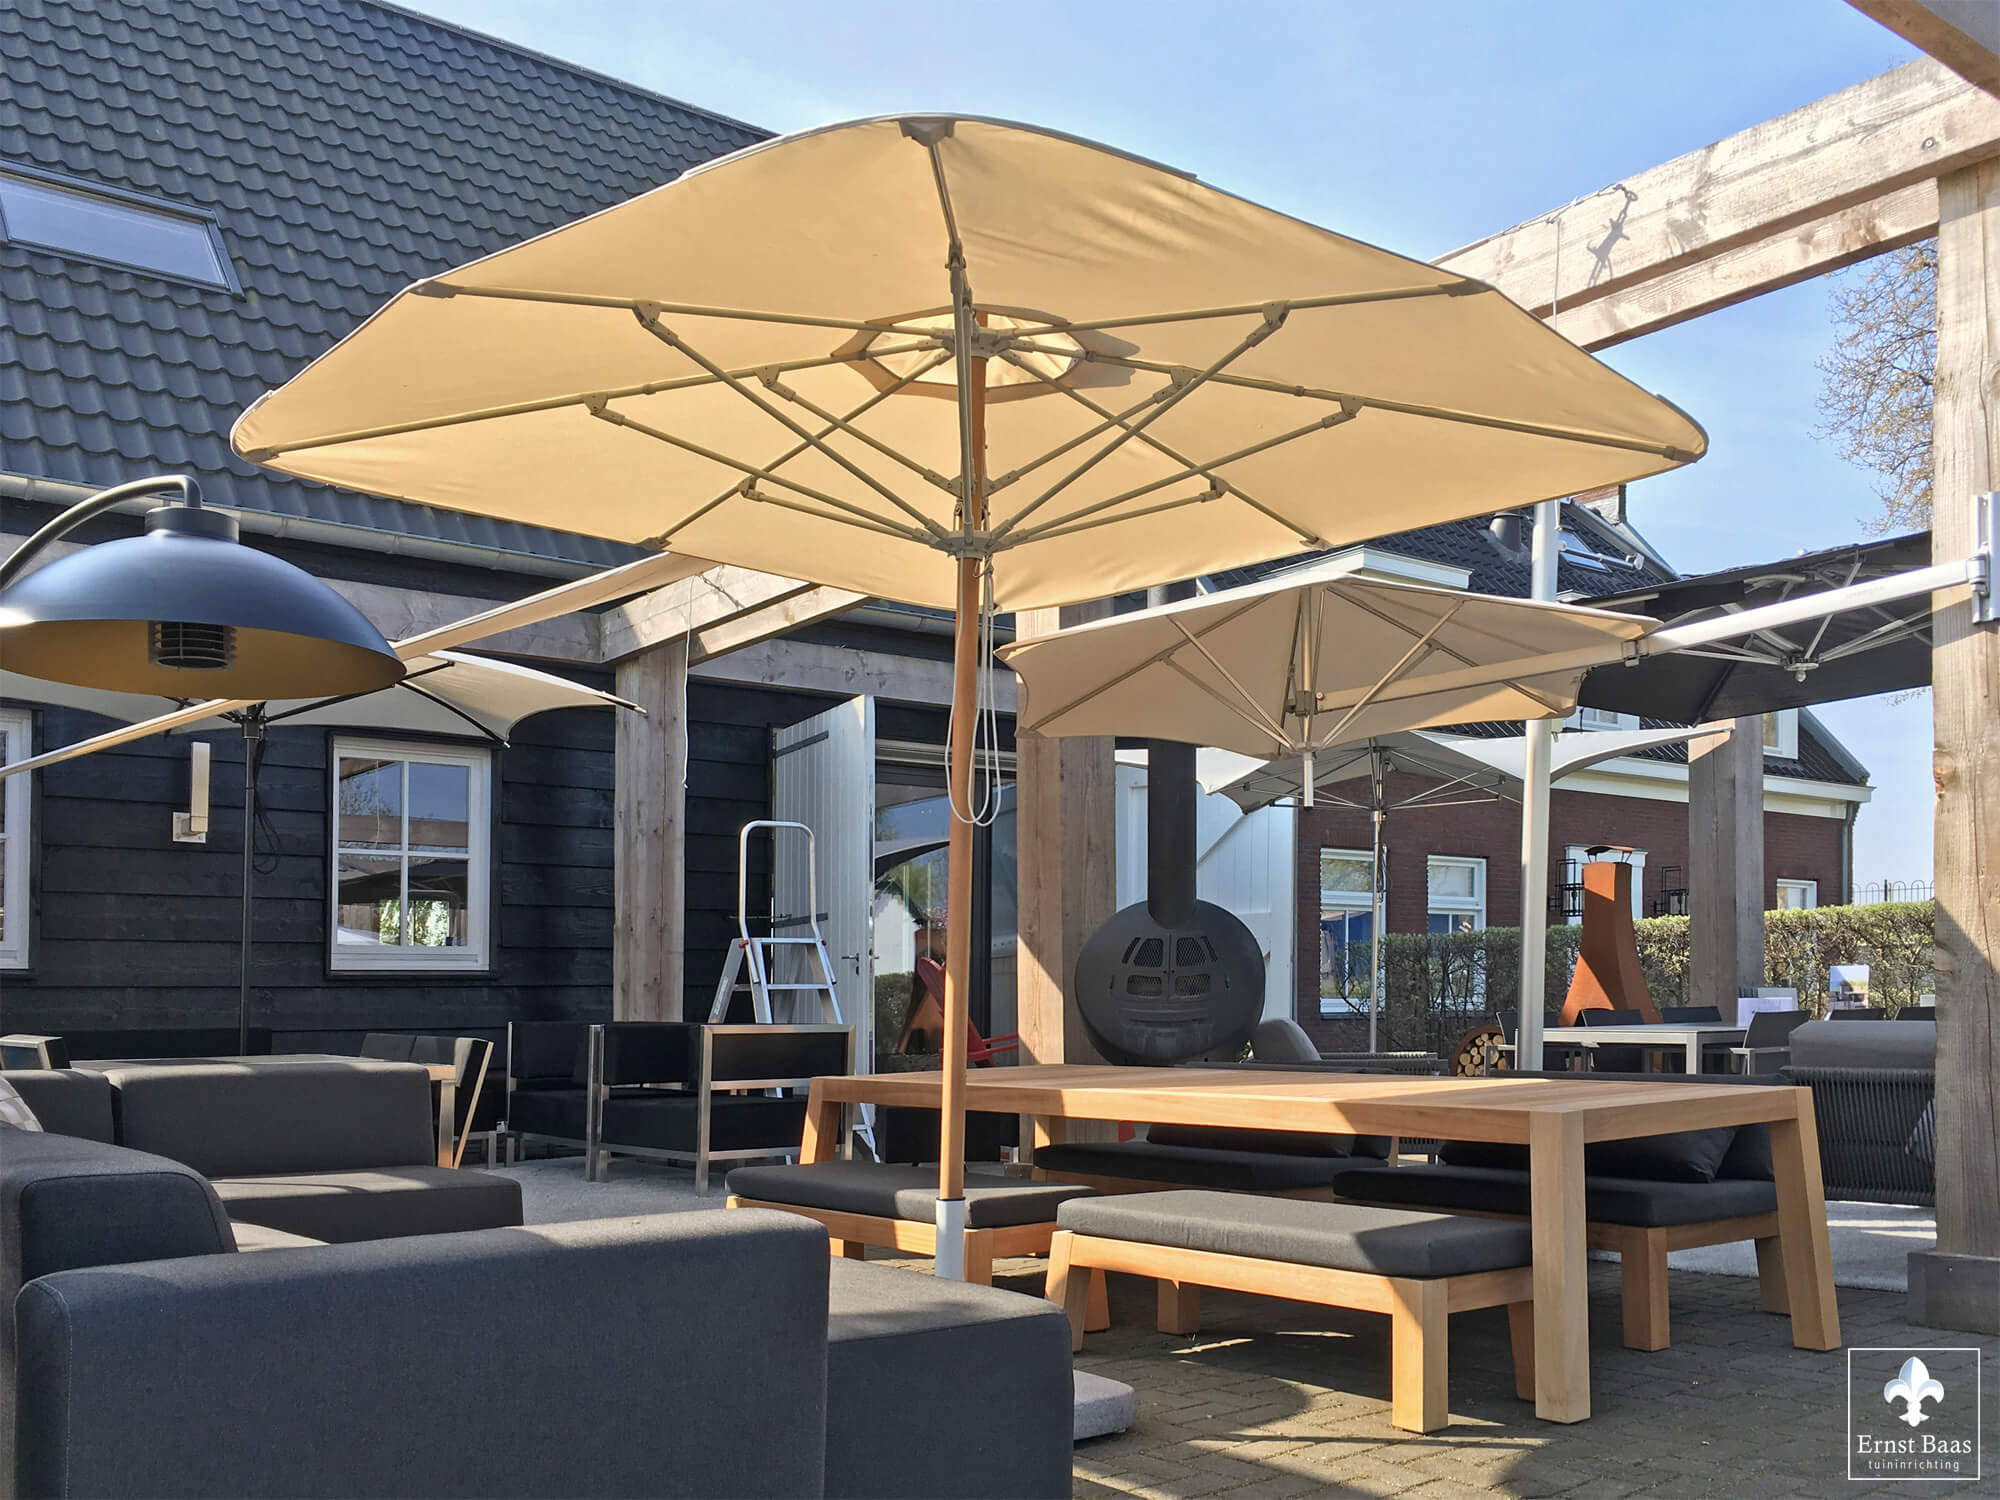 Umbrosa - Design2Chill - Heatsail - Piet Boon tuinmeubelen